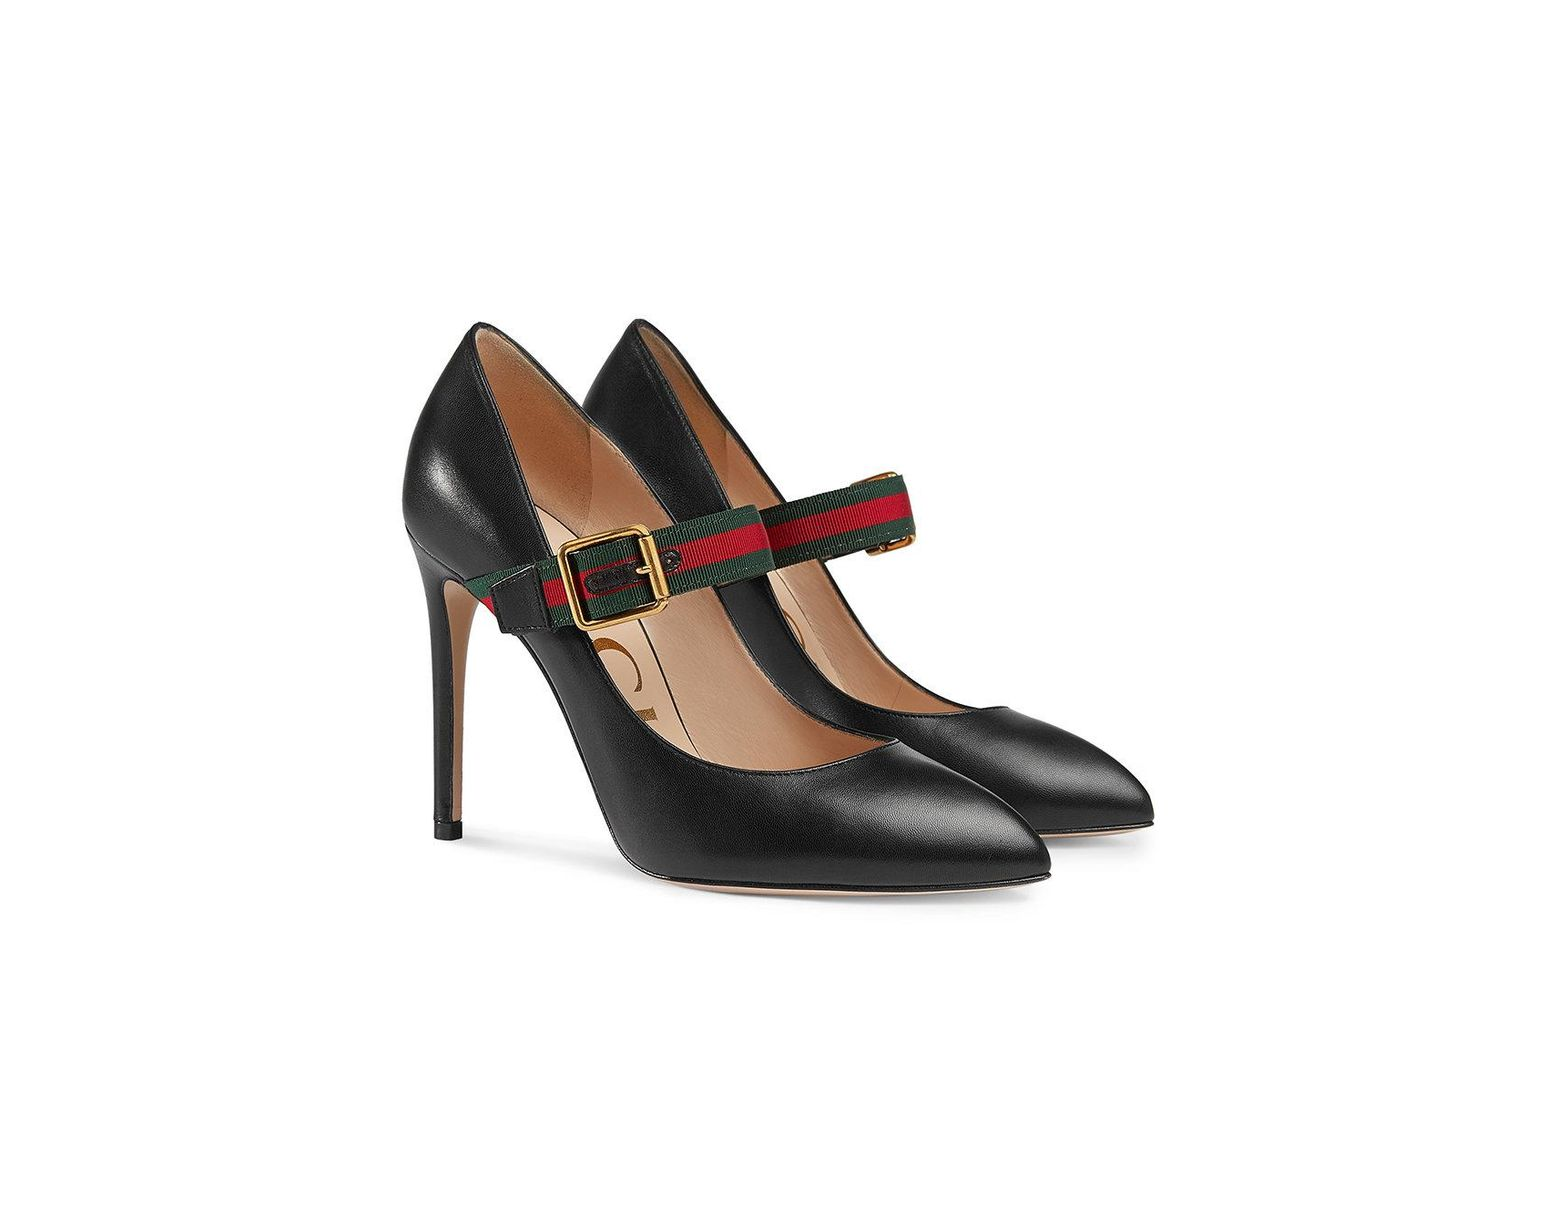 551518edaed Lyst - Gucci Sylvie Leather Mid-heel Pumps in Black